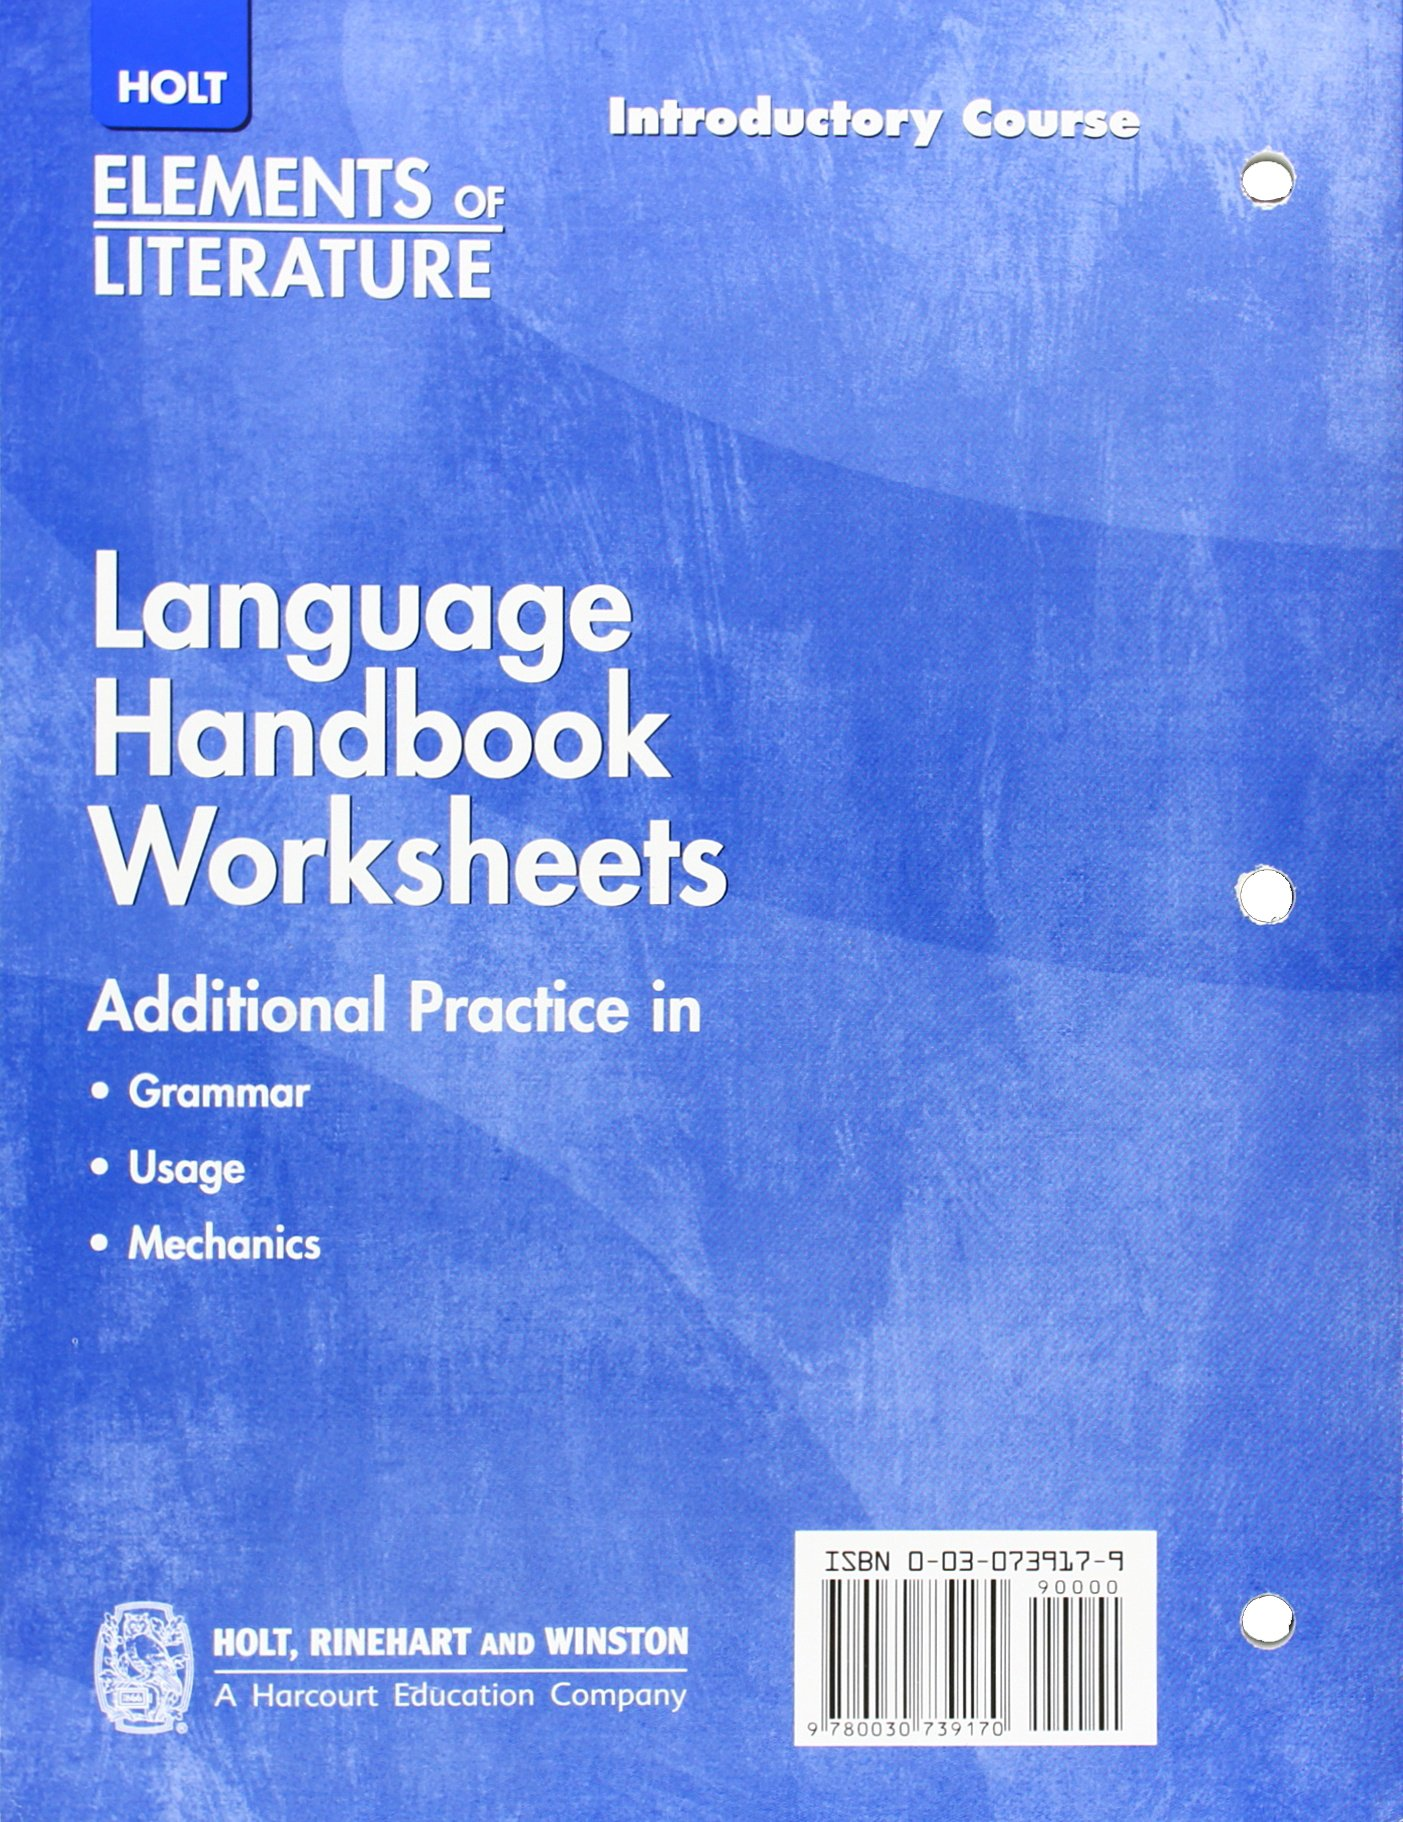 Free Worksheet Language Handbook Worksheets Answer Key Online holt elements of literature language handbook worksheets introductory course grade 6 rinehart and winston 9780030739170 amazon